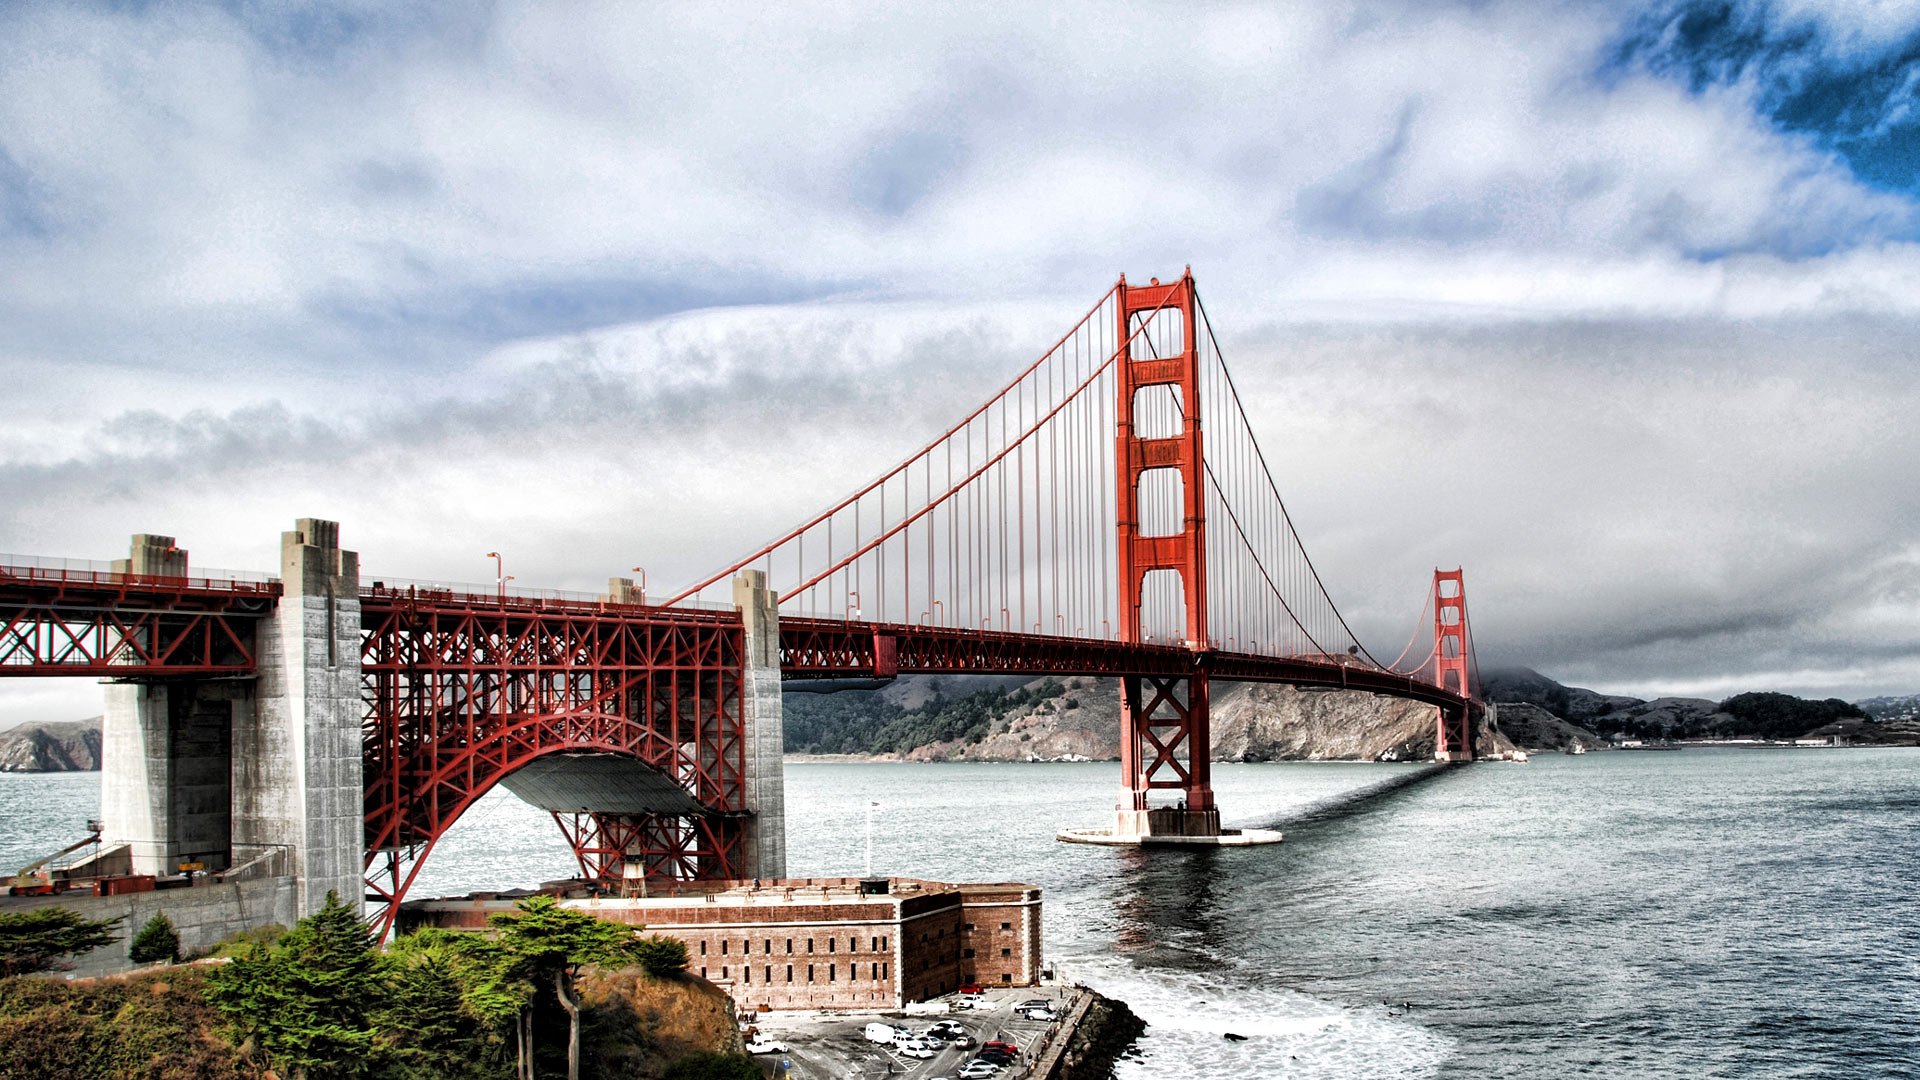 San Francisco HD Wallpapers for desktop download 1920x1080